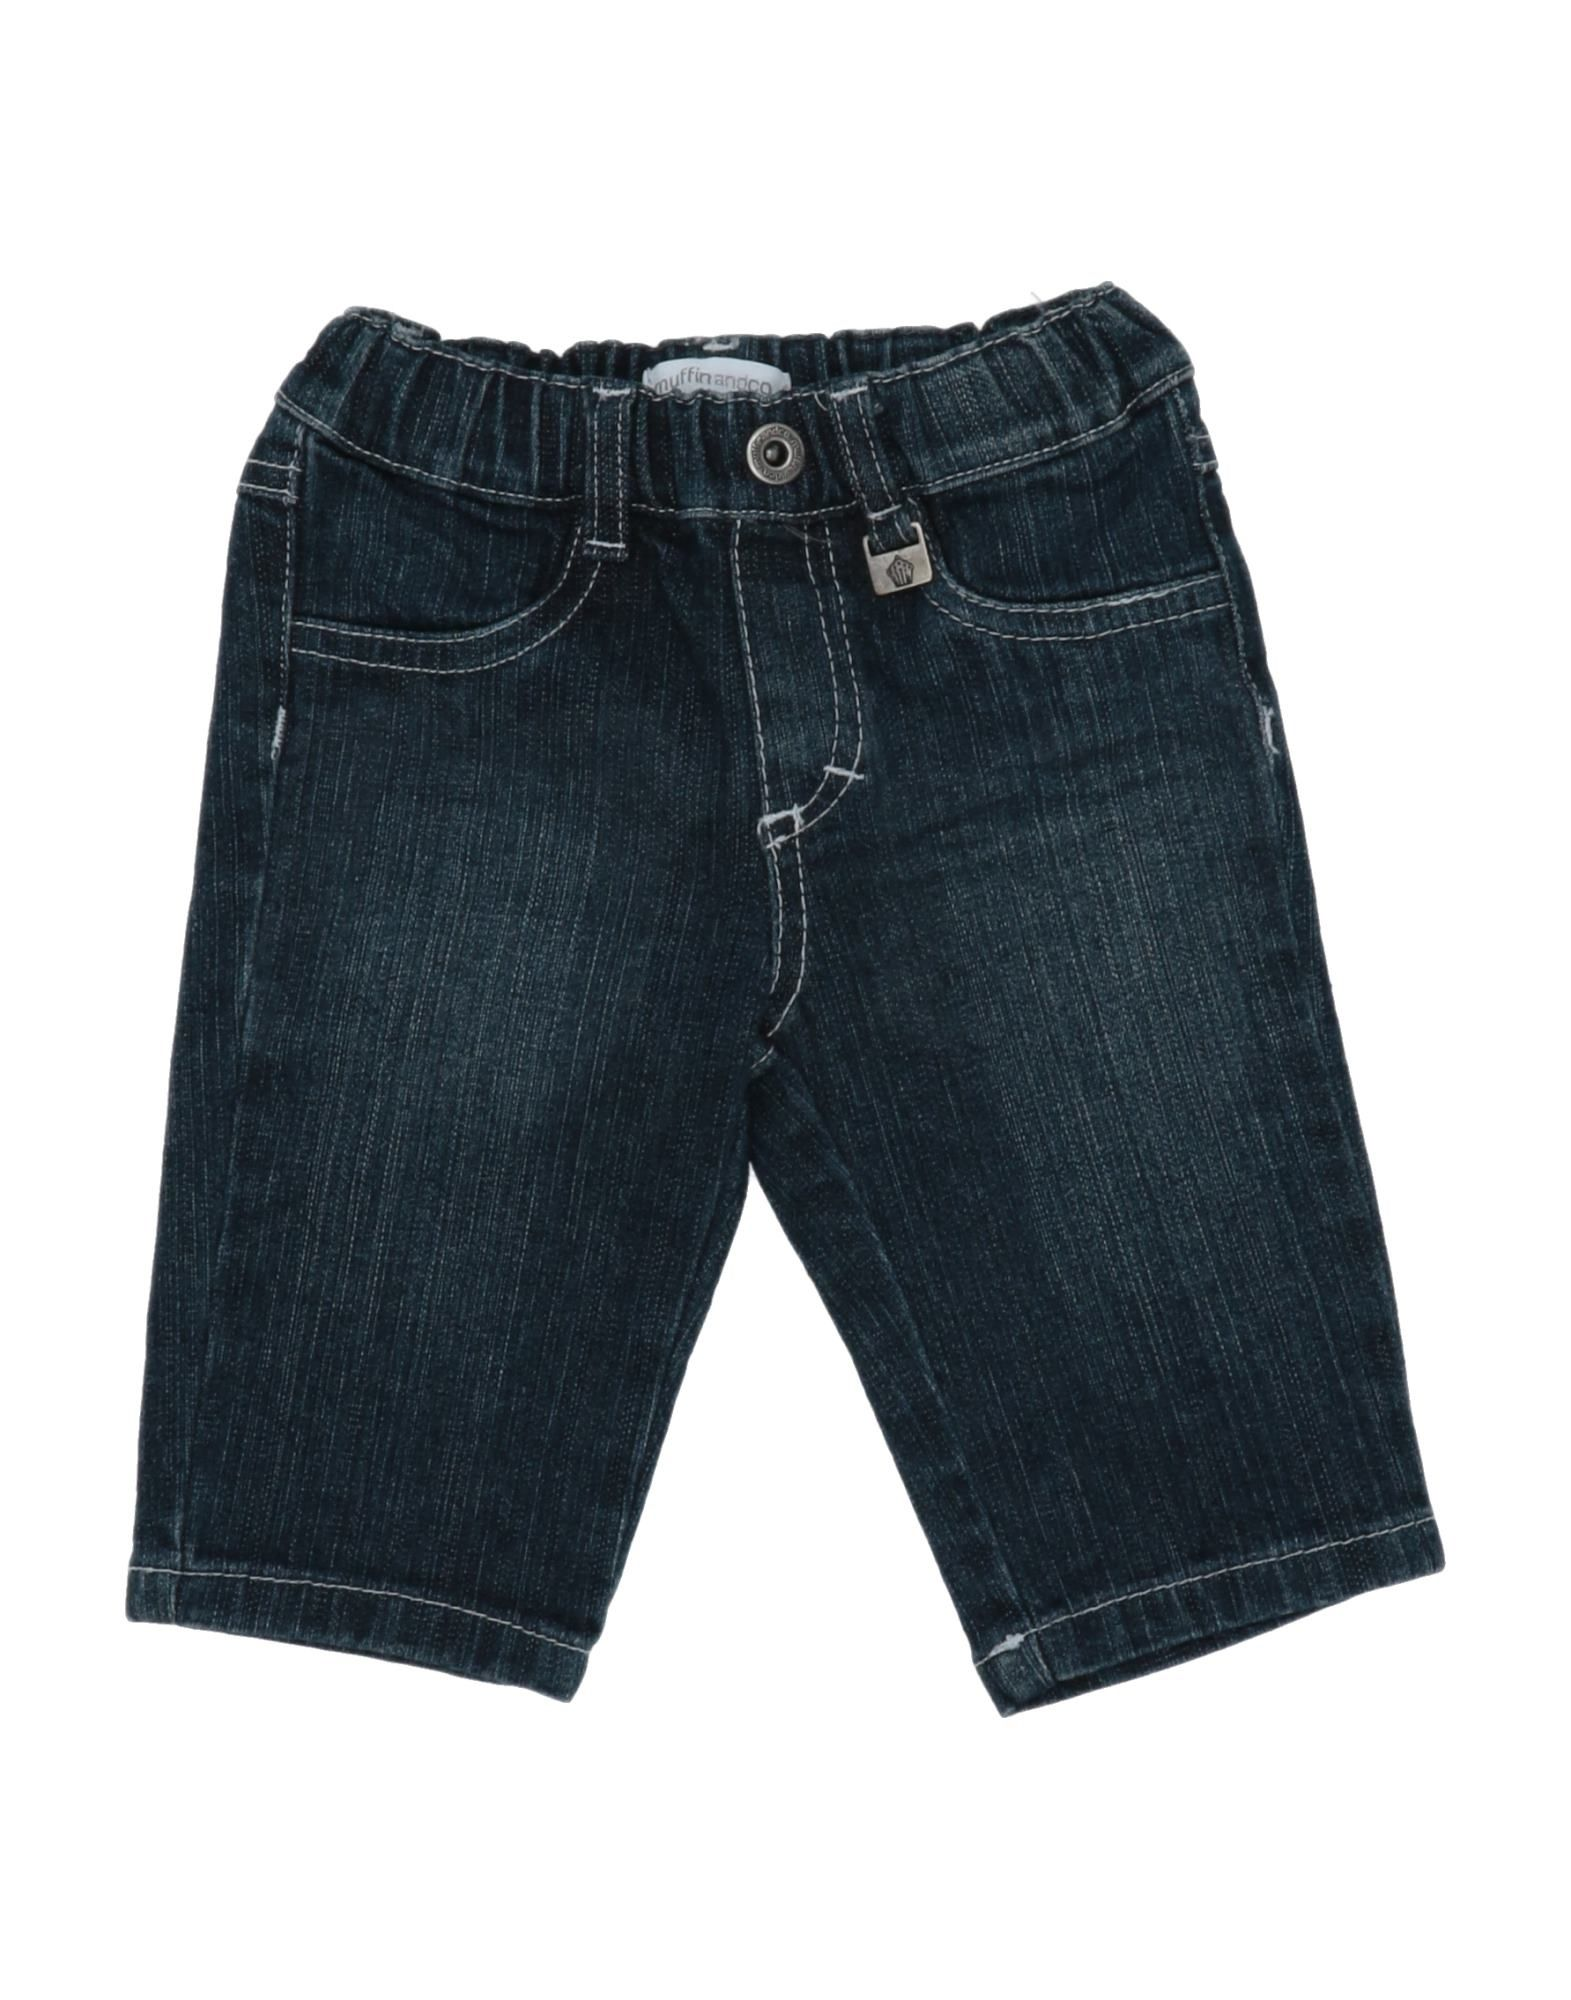 Muffin & Co. Kids' Jeans In Blue